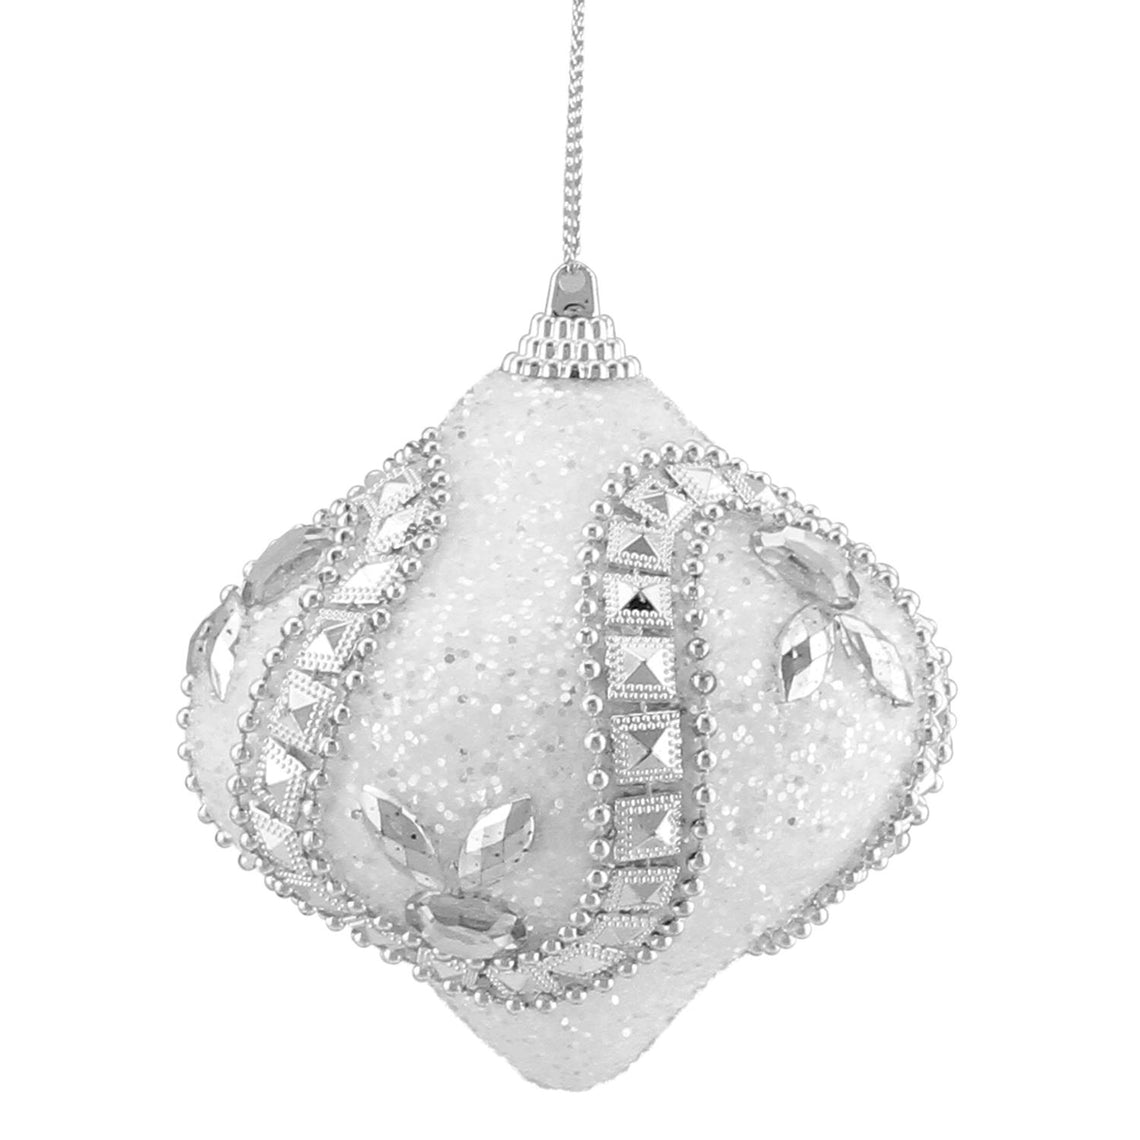 3Ct White And Silver Rhinestone And Glittered Shatterproof Onion Christmas Ornaments 3